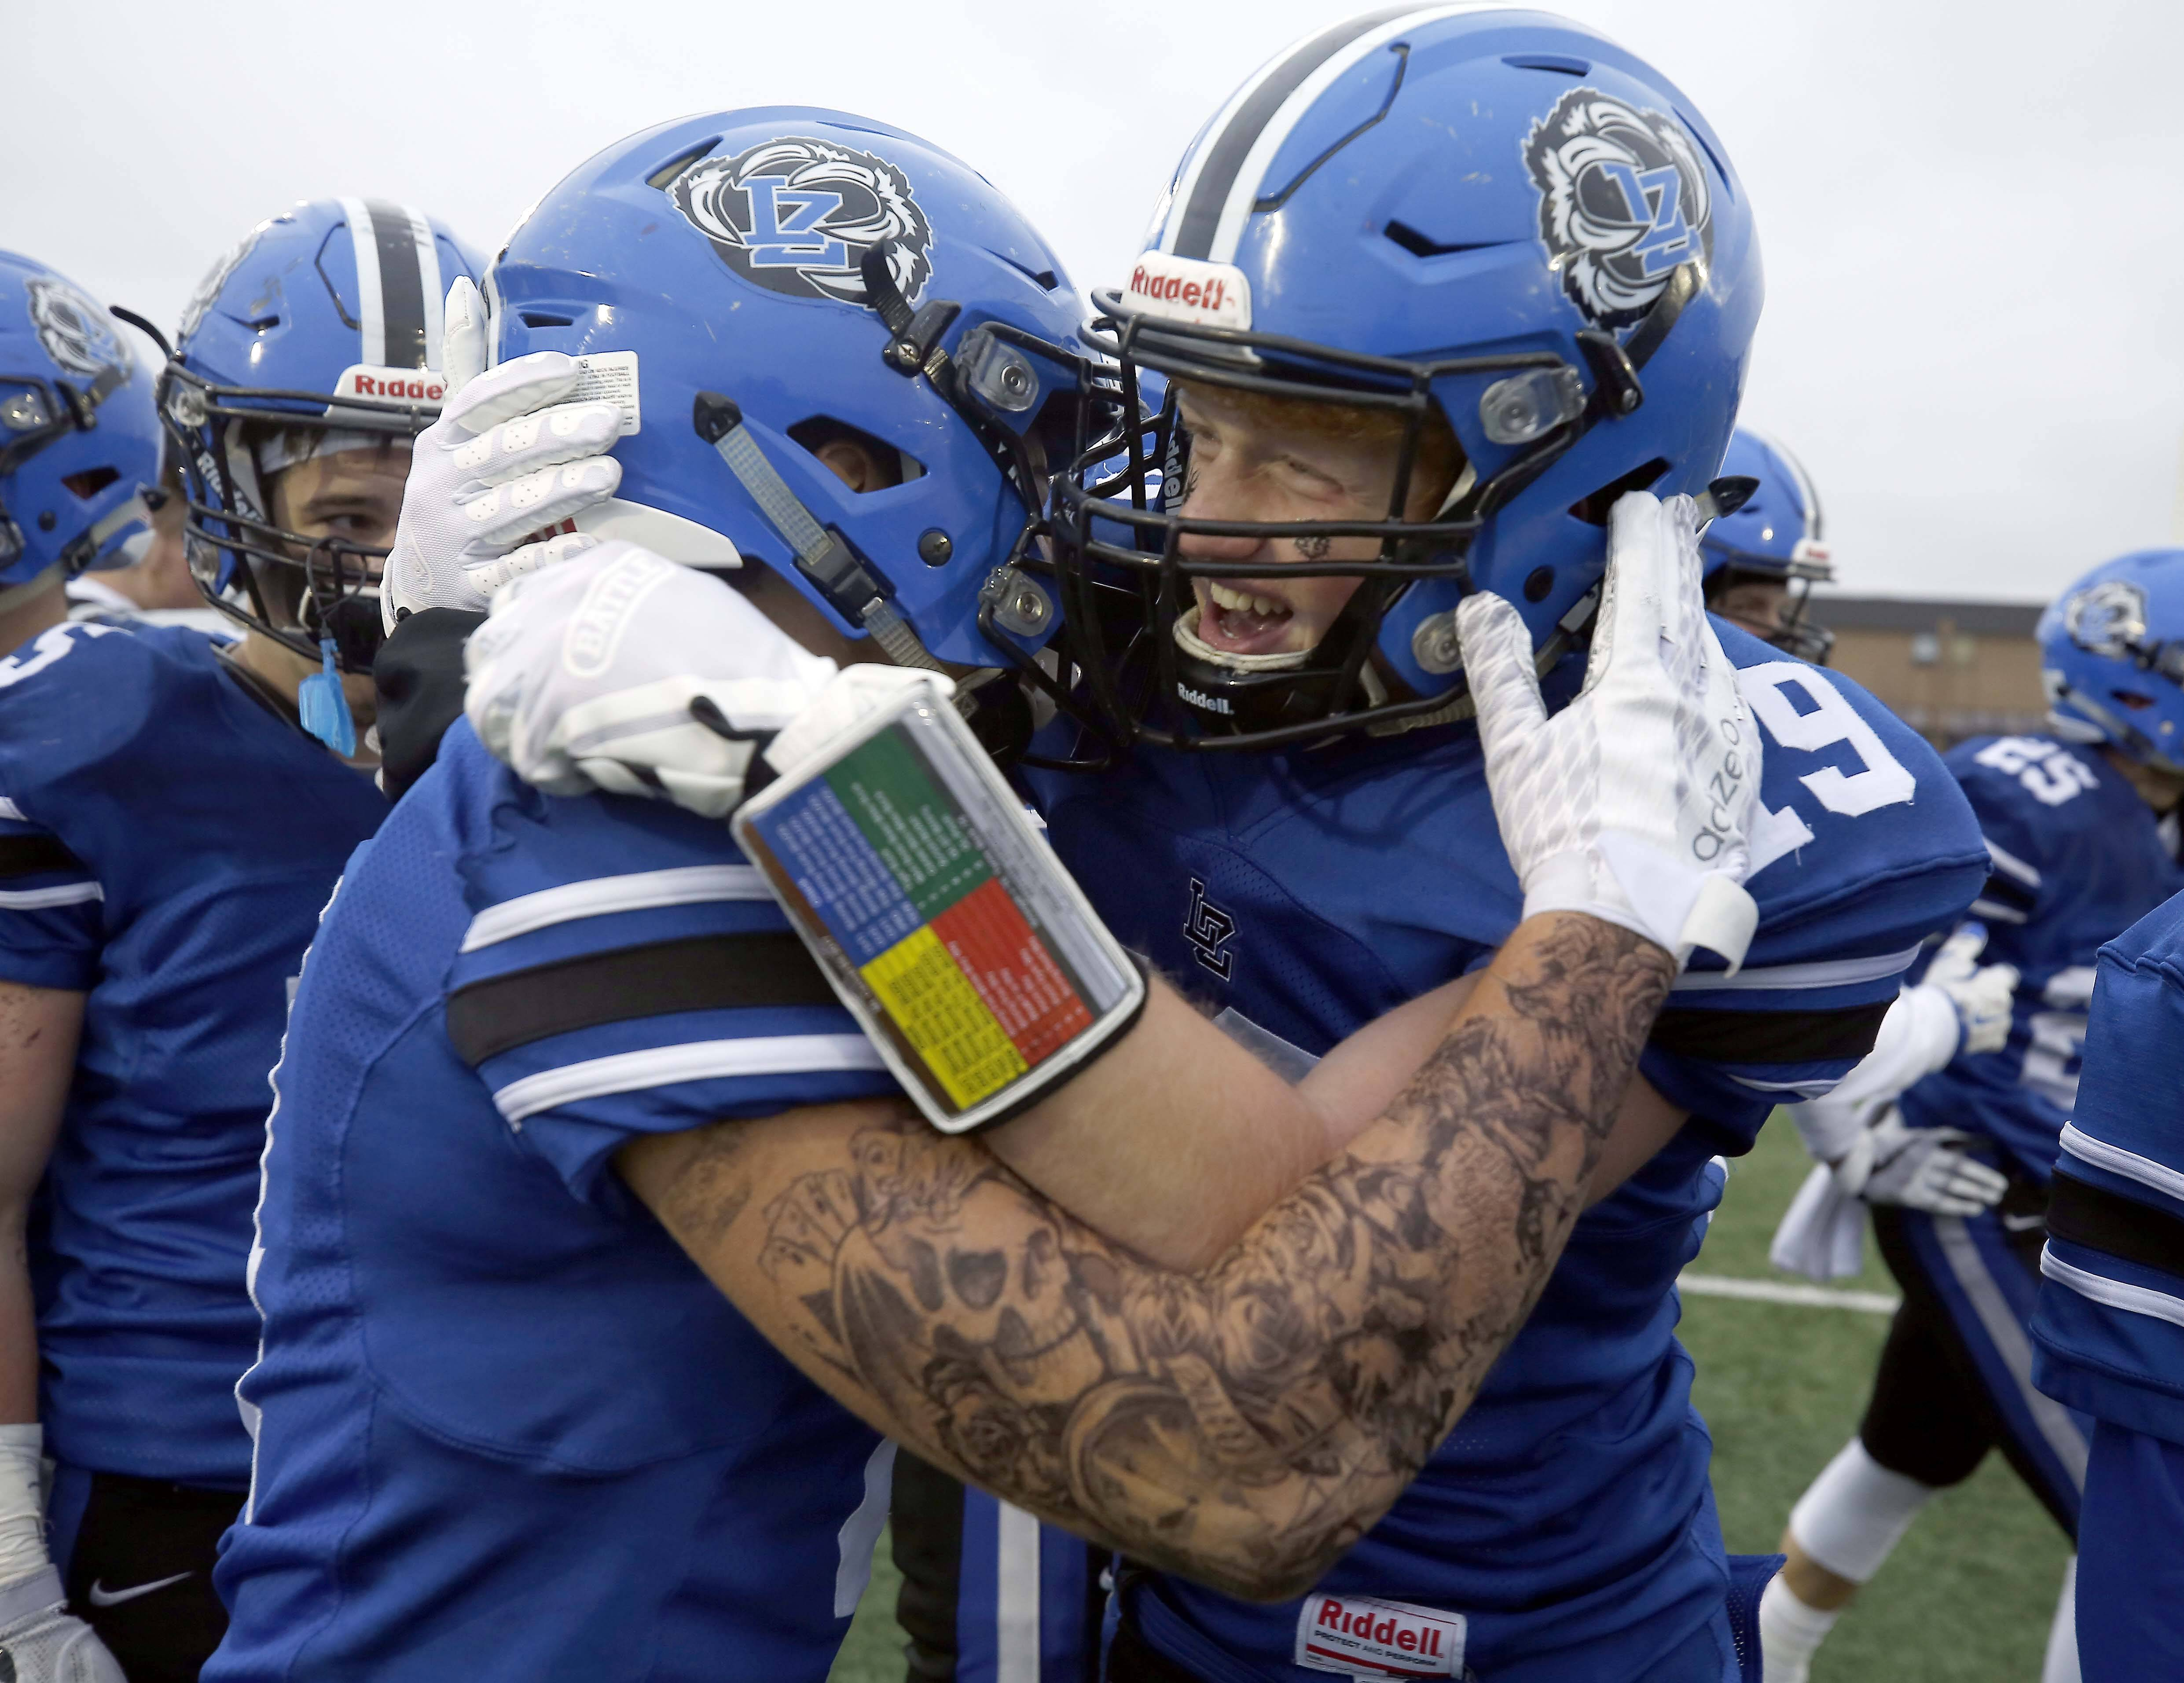 Lake Zurich players celebrate at the end of their win against Mt. Carmel in the Class 7A semifinals on Saturday in Lake Zurich.